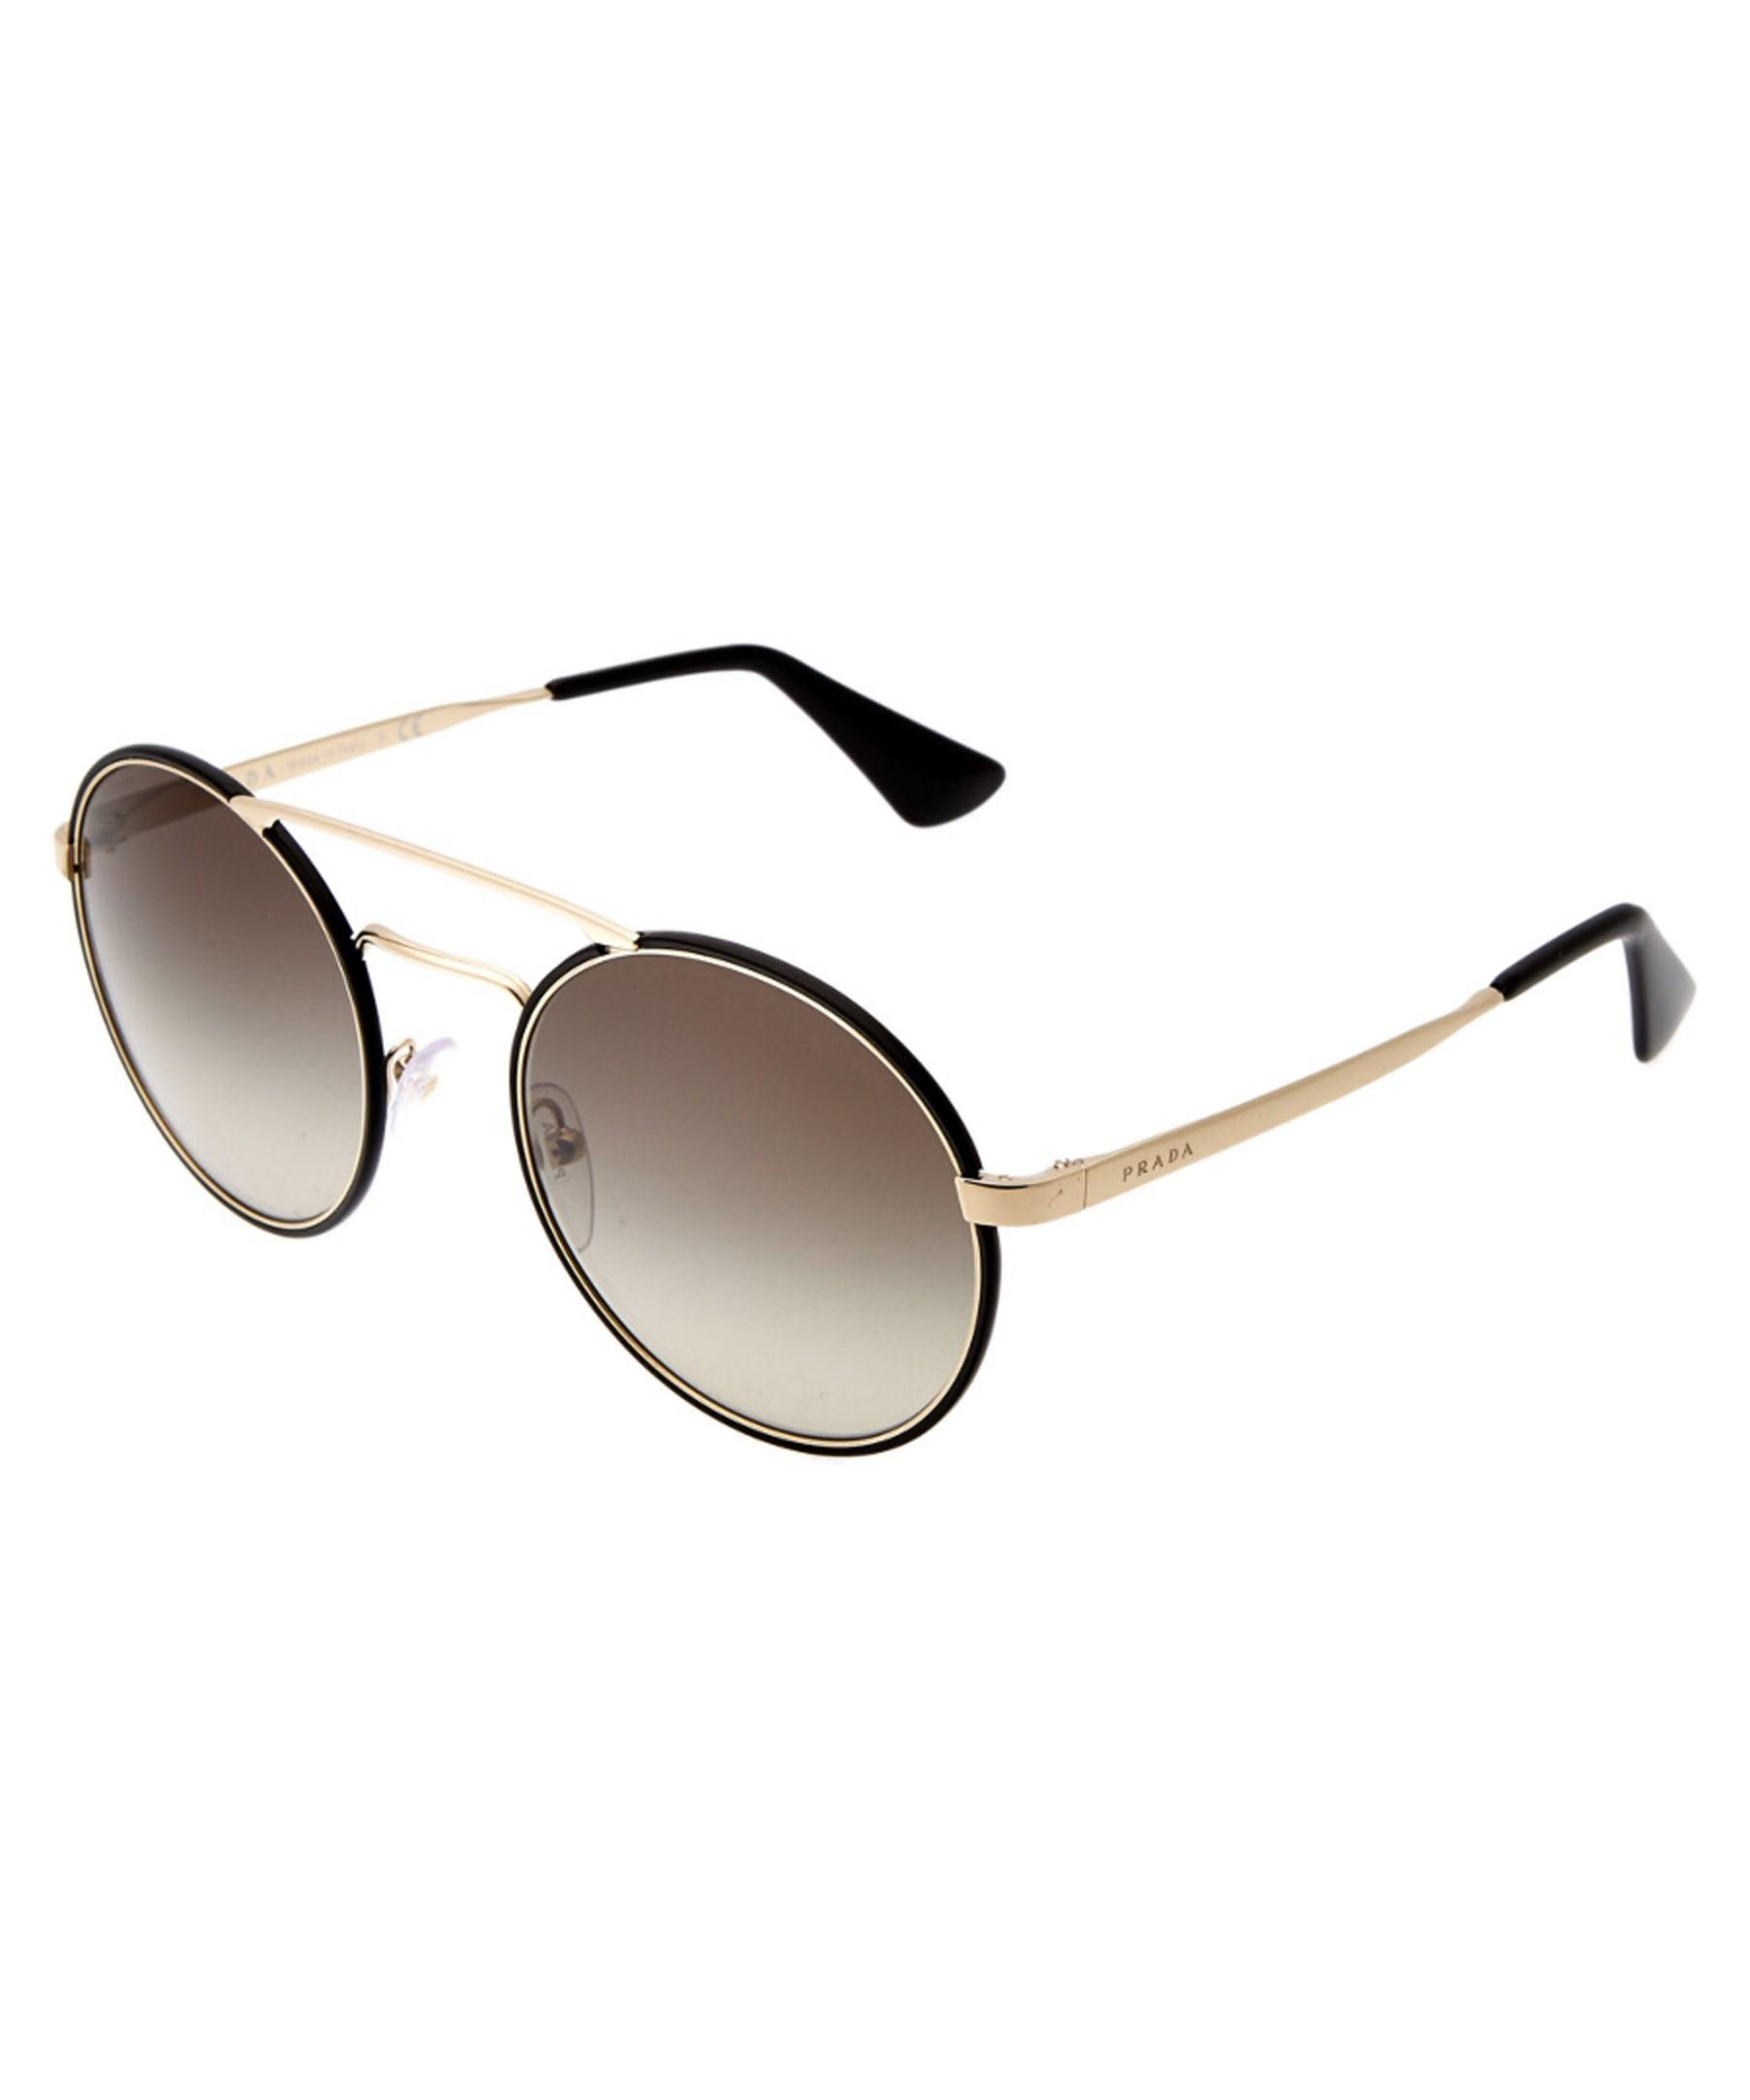 f687b42130ef4 Gucci Gg0034s Unisex Square Fashion Sunglasses 54mm